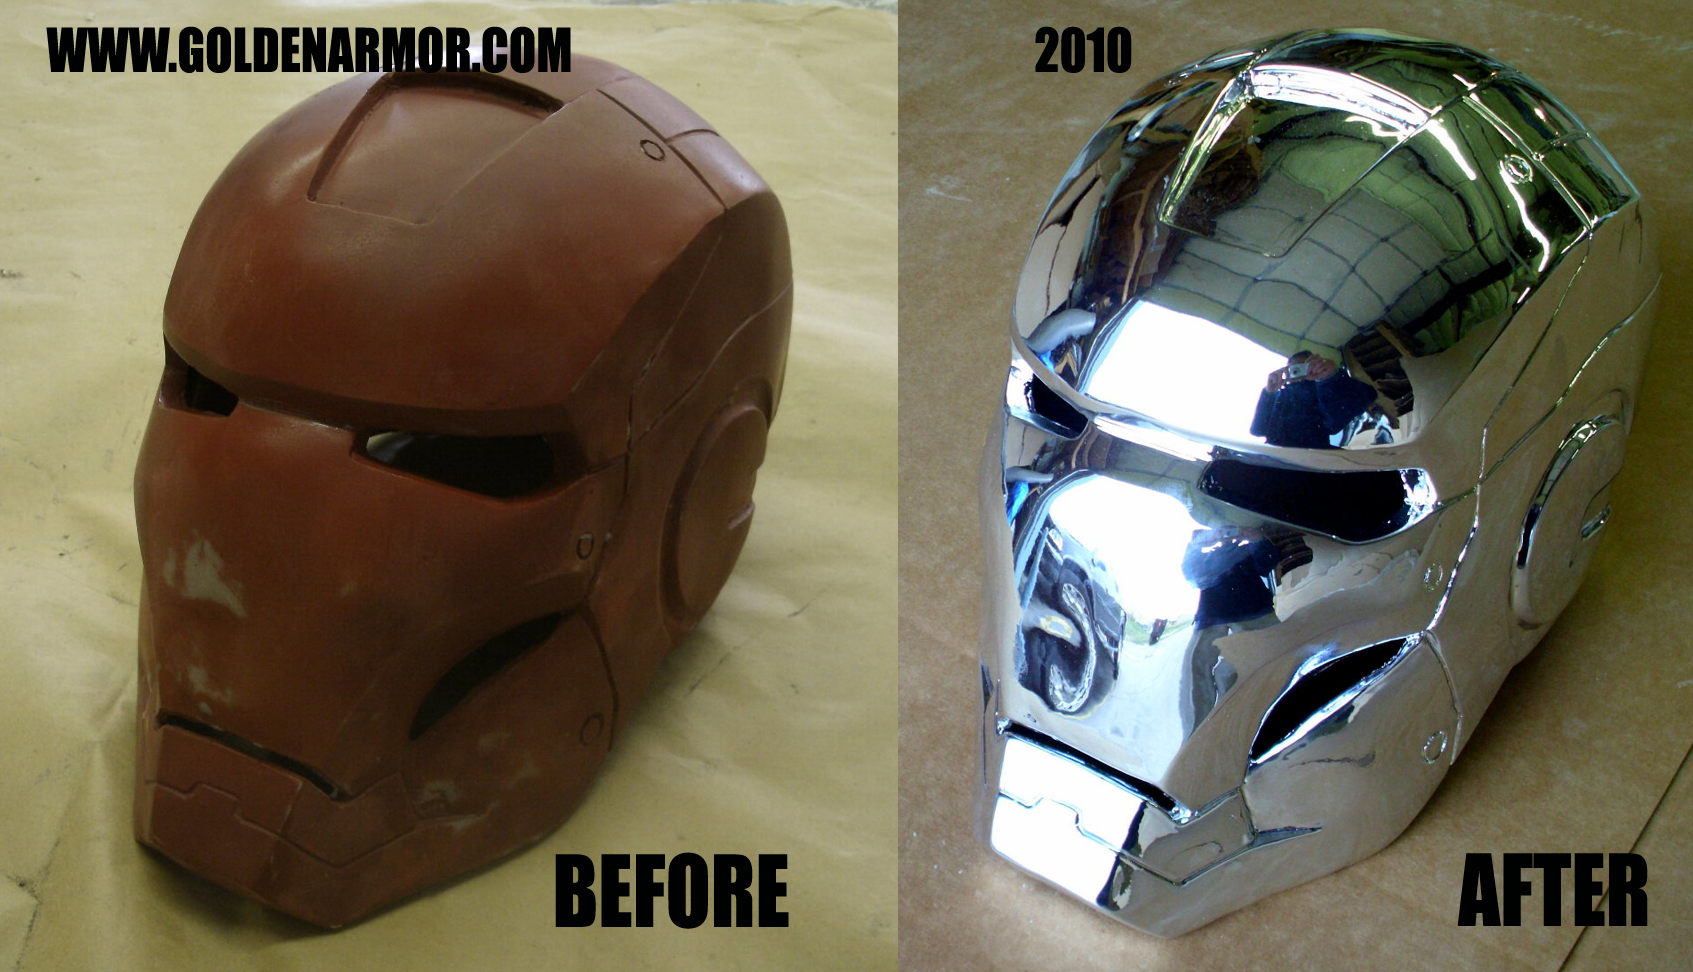 CHROME PLATING SERVICES - Prop Replicas, Custom Fabrication, SPECIAL